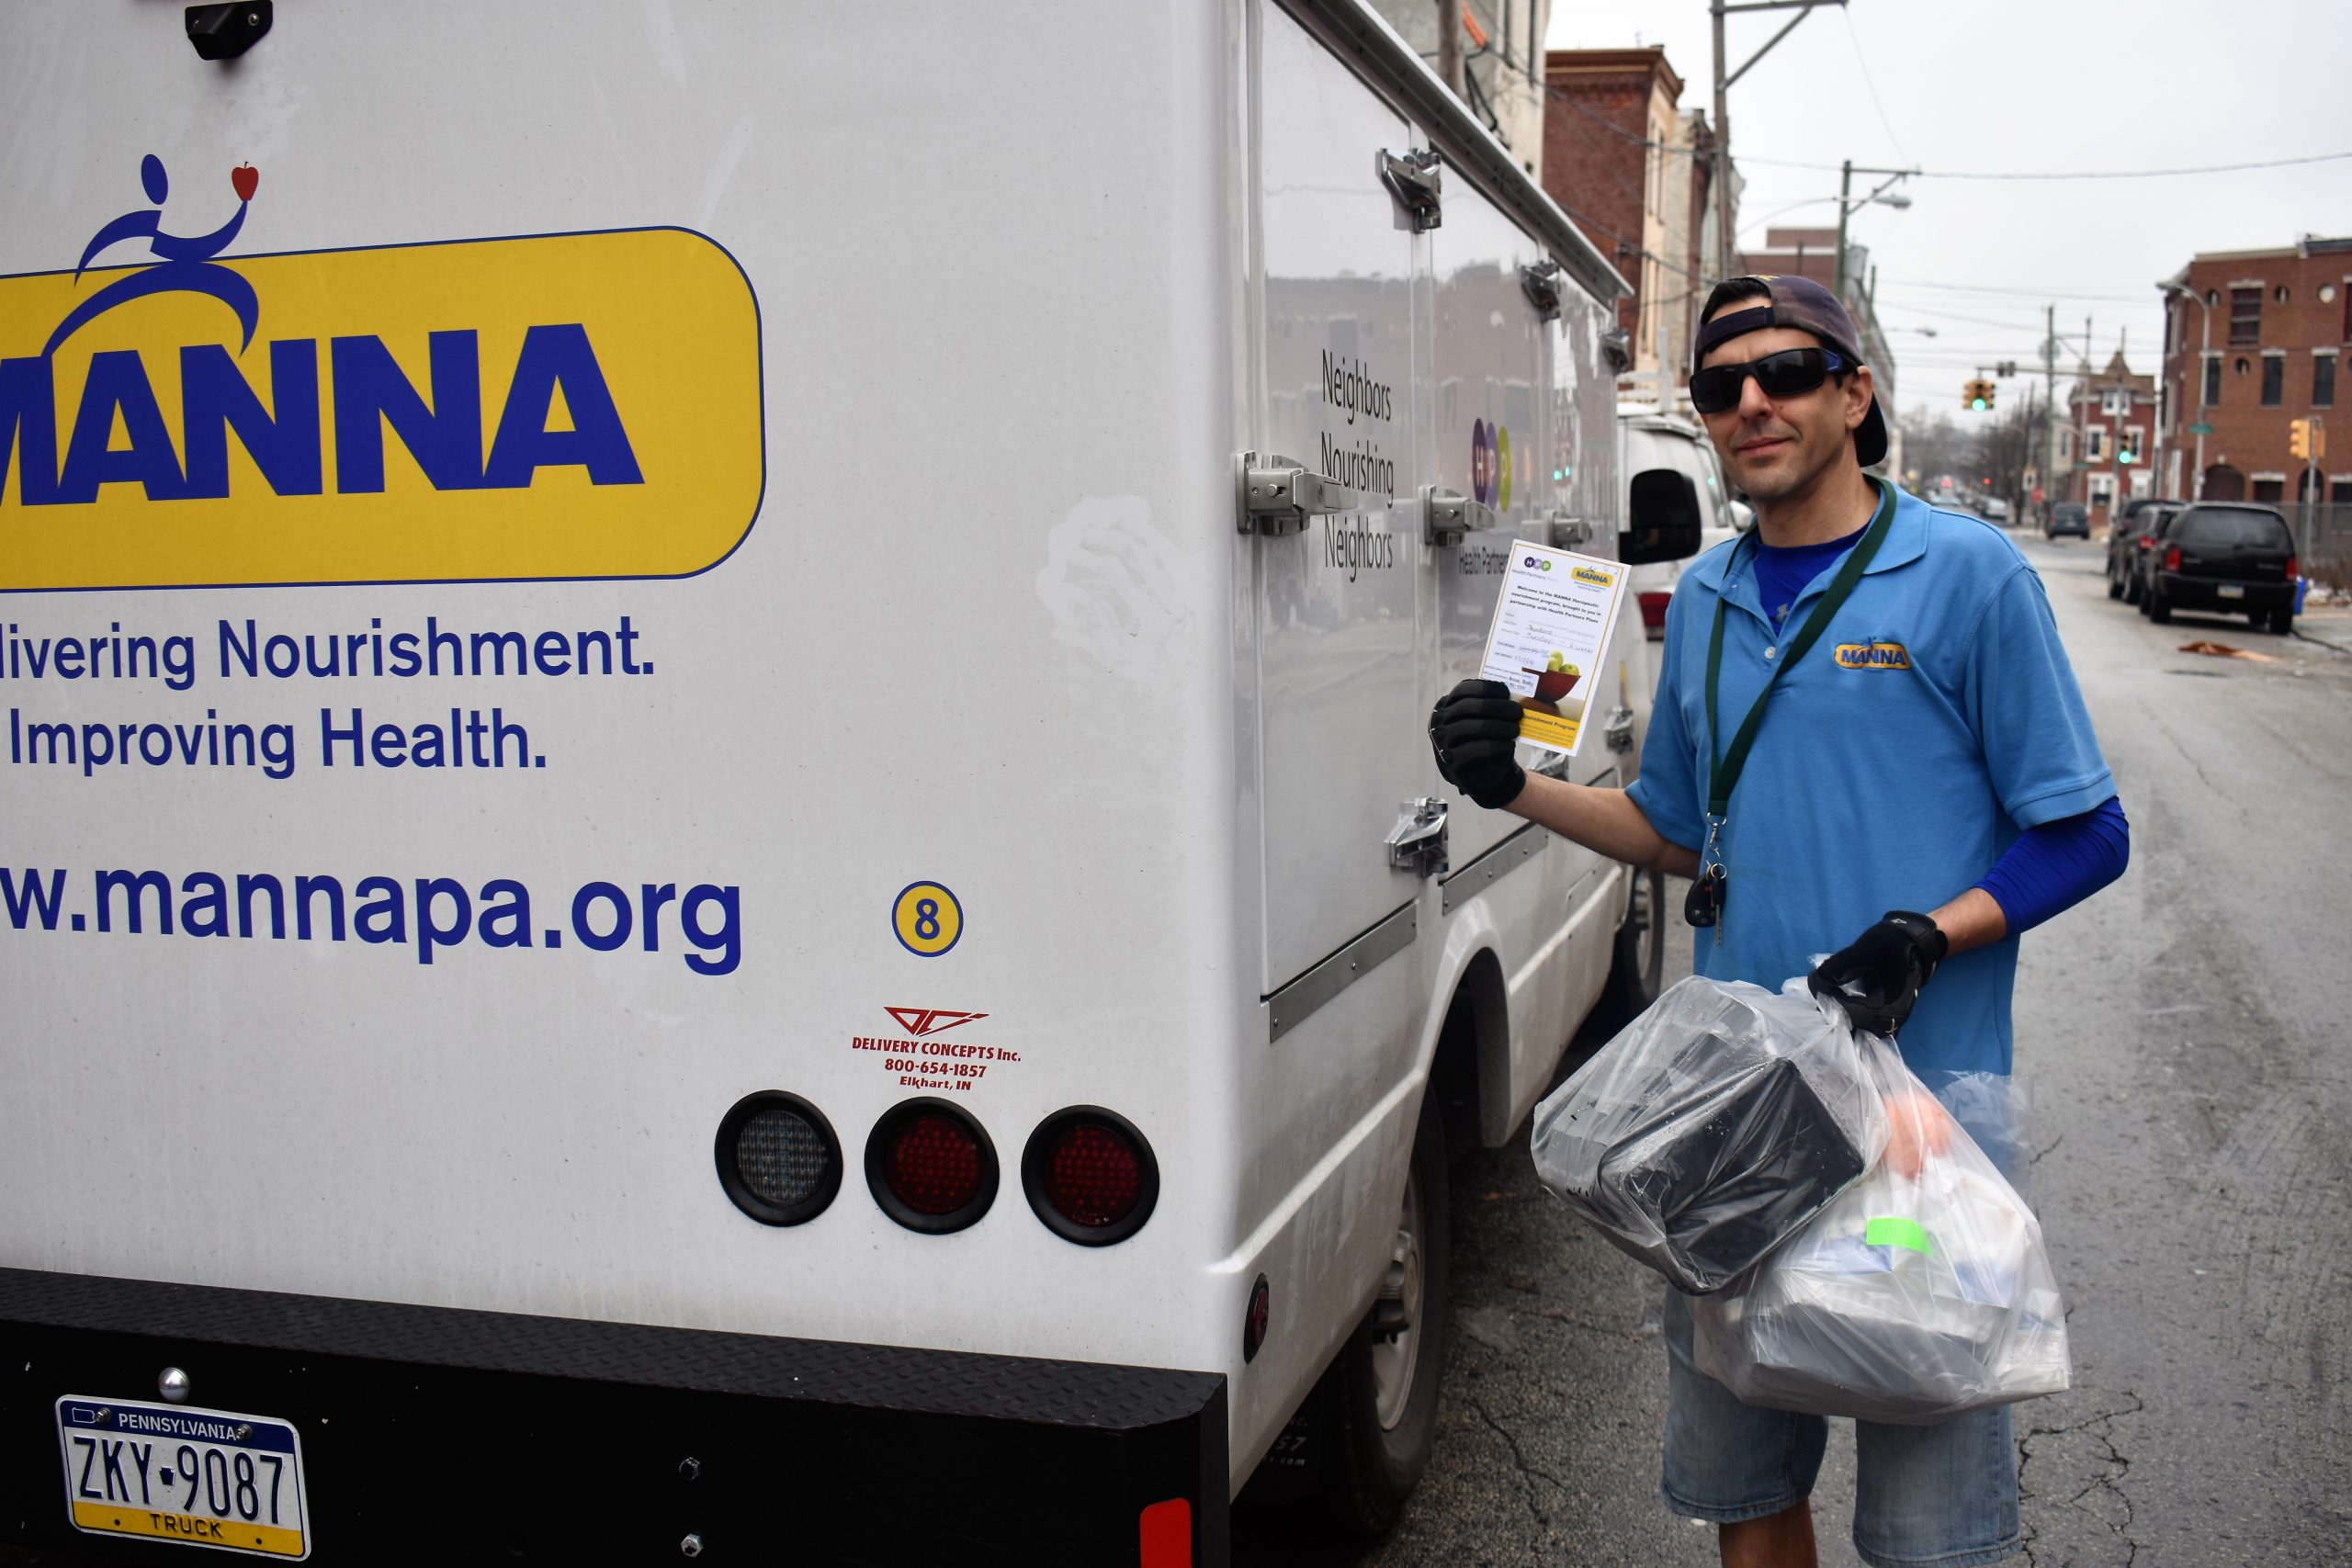 MANNA food delivery driver pictured next to a truck with the MANNA logo